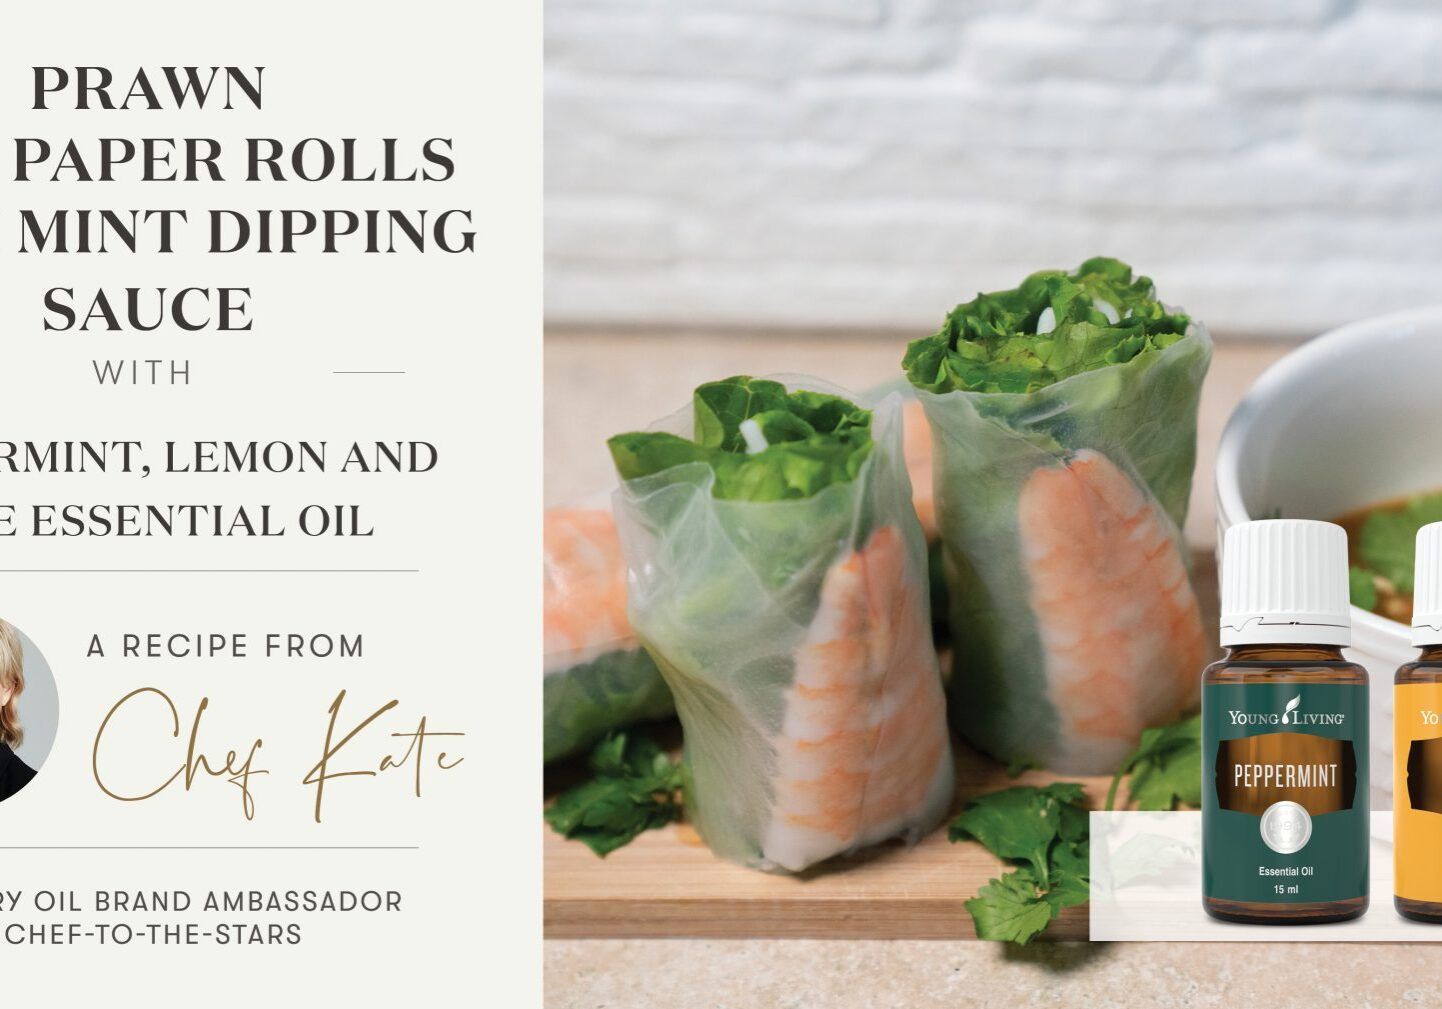 Prawn Rice Paper Rolls with Mint Dipping Sauce